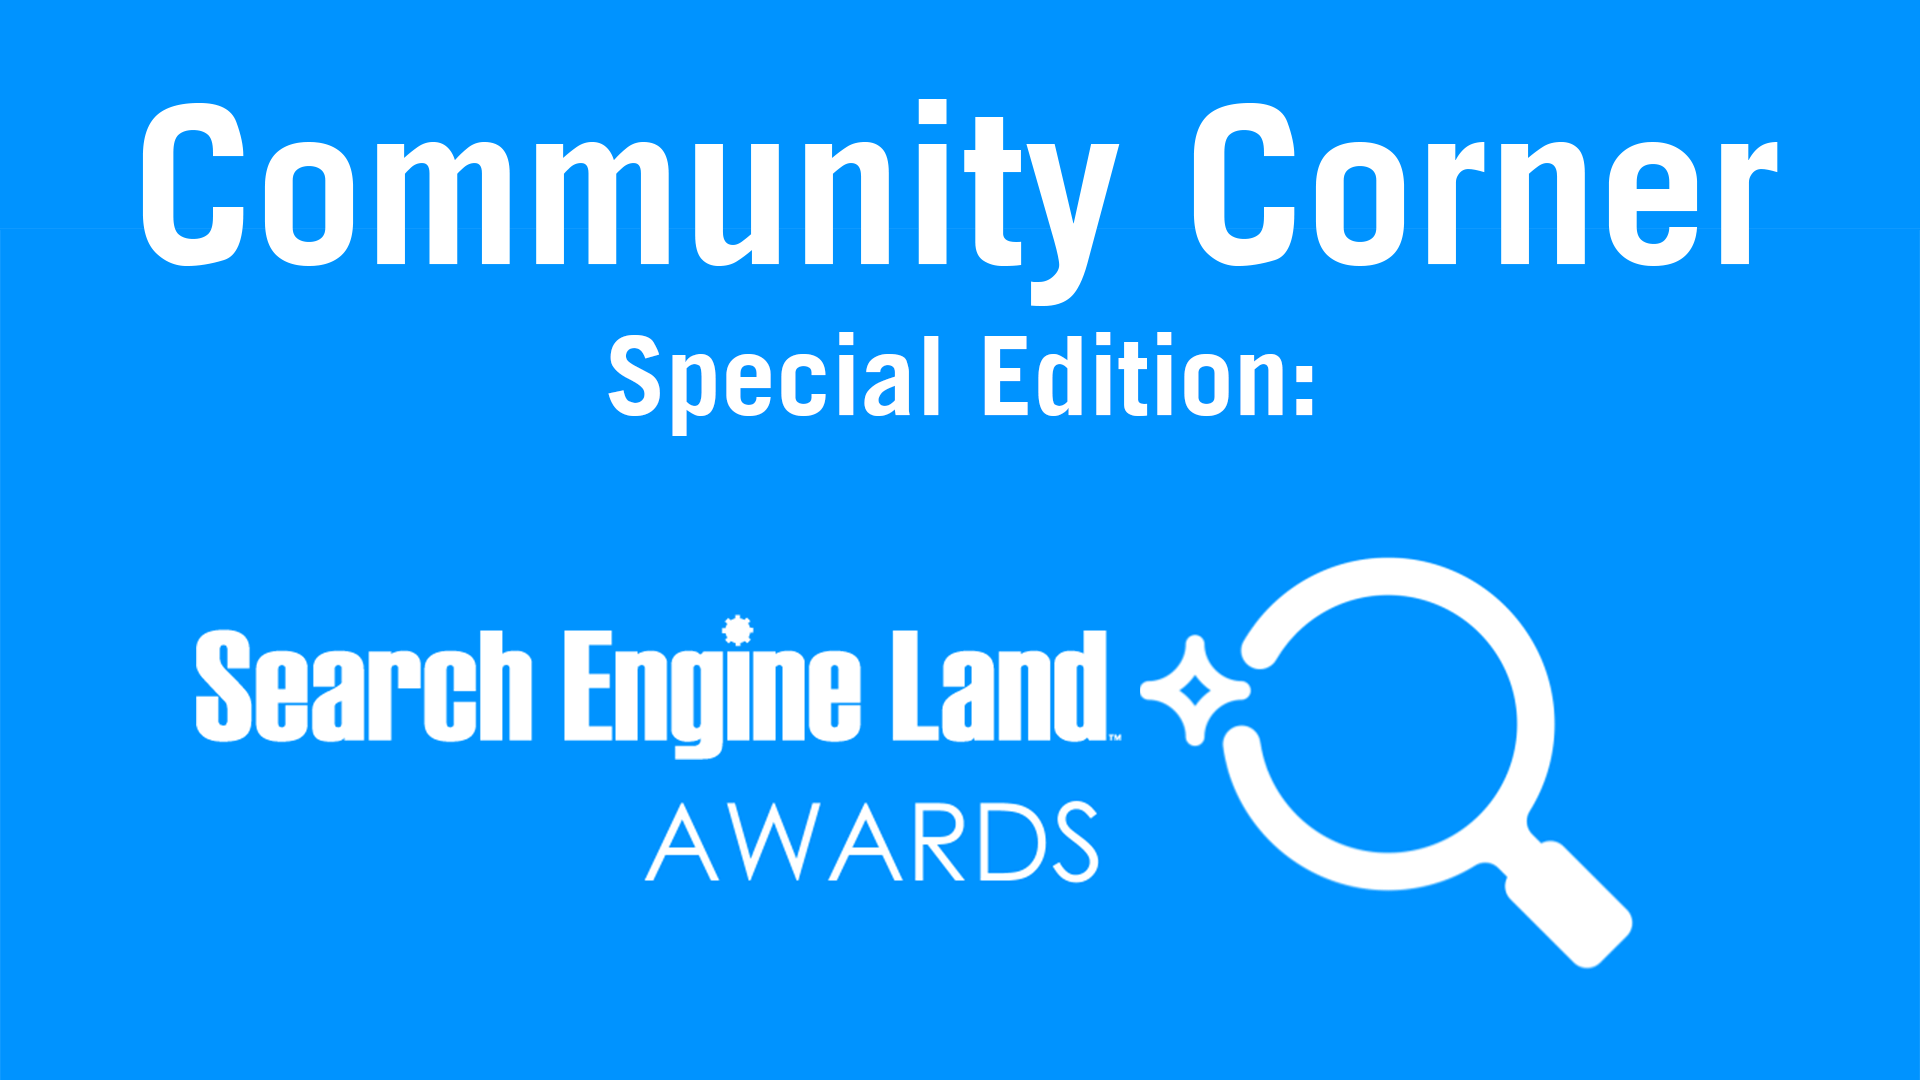 Spotlight on Search Engine Land Award Winners Wolfgang Digital, Metric Theory & Precis Digital